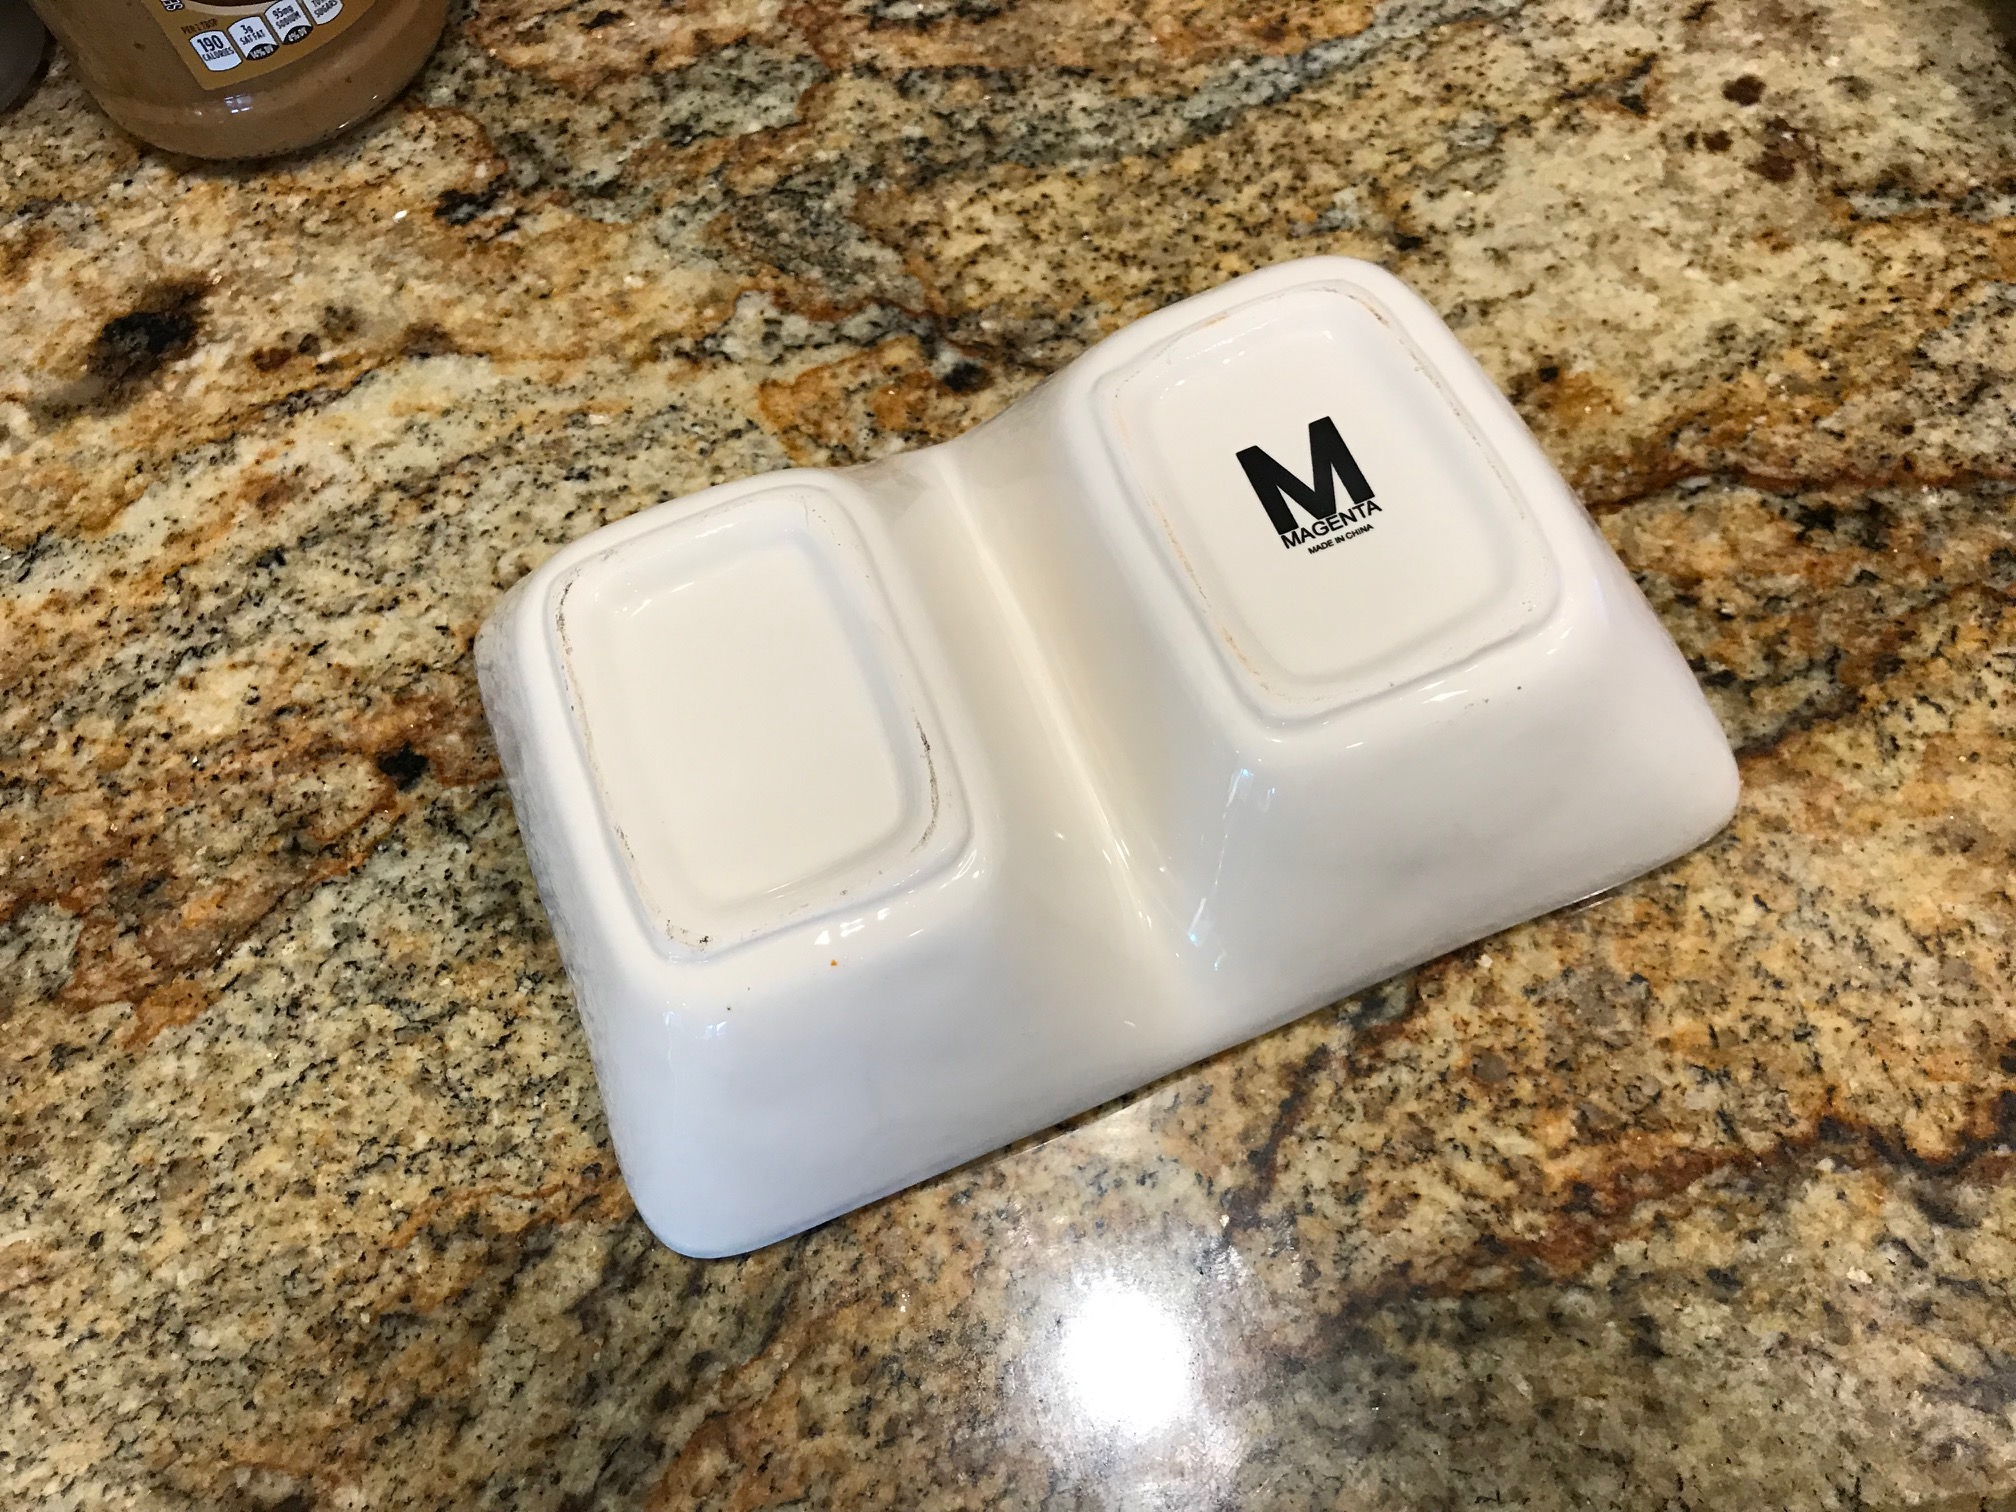 Rae Dunn (by Magenta) Snack / Treat Serving Dish, Made in China: 647 +/- 37 ppm Lead